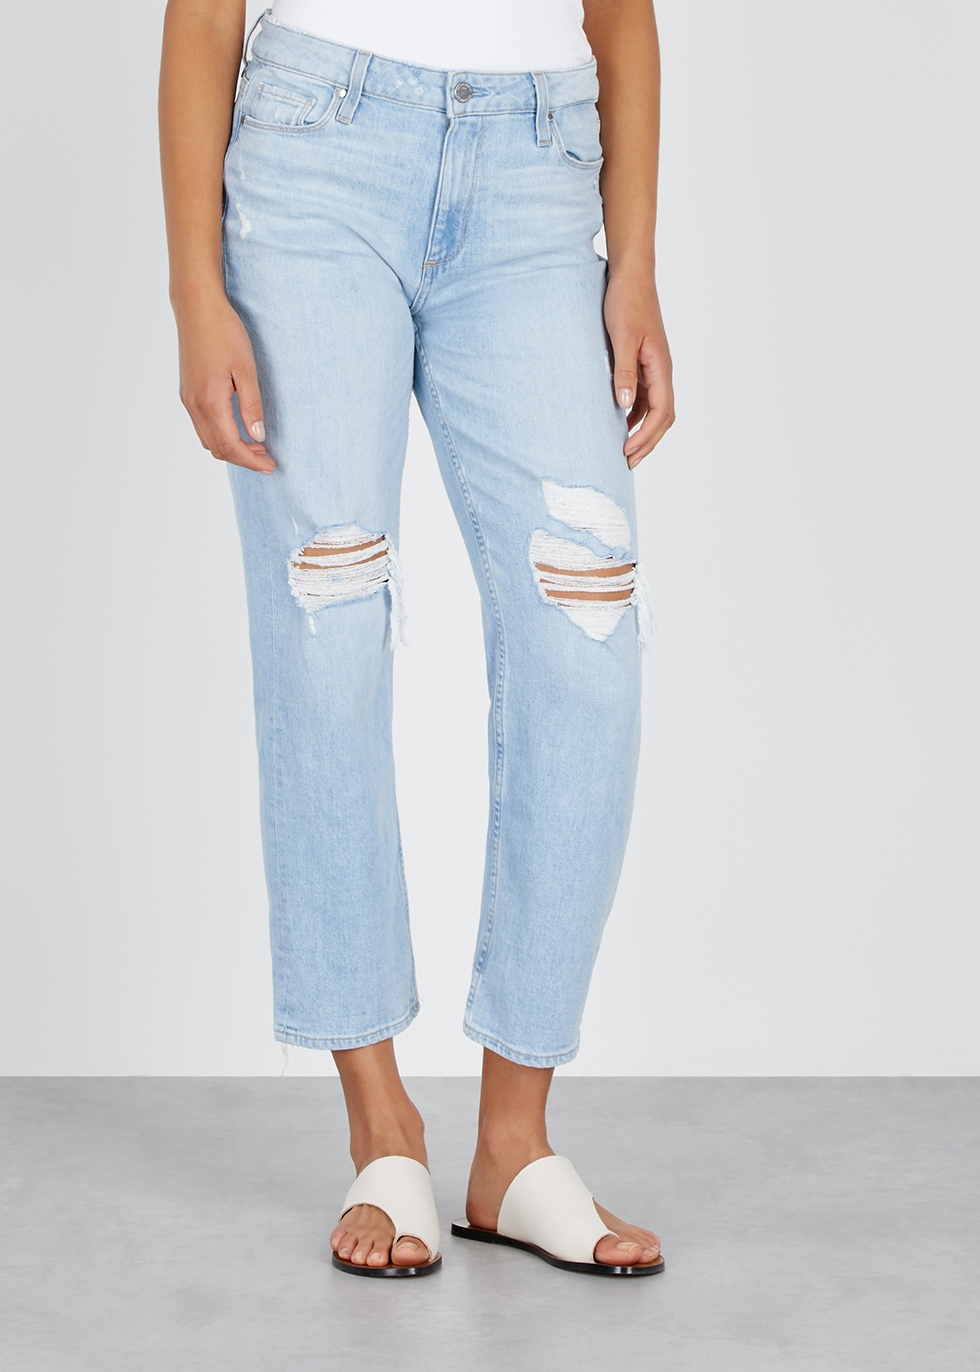 Noella ripped straight-leg jeans - Paige